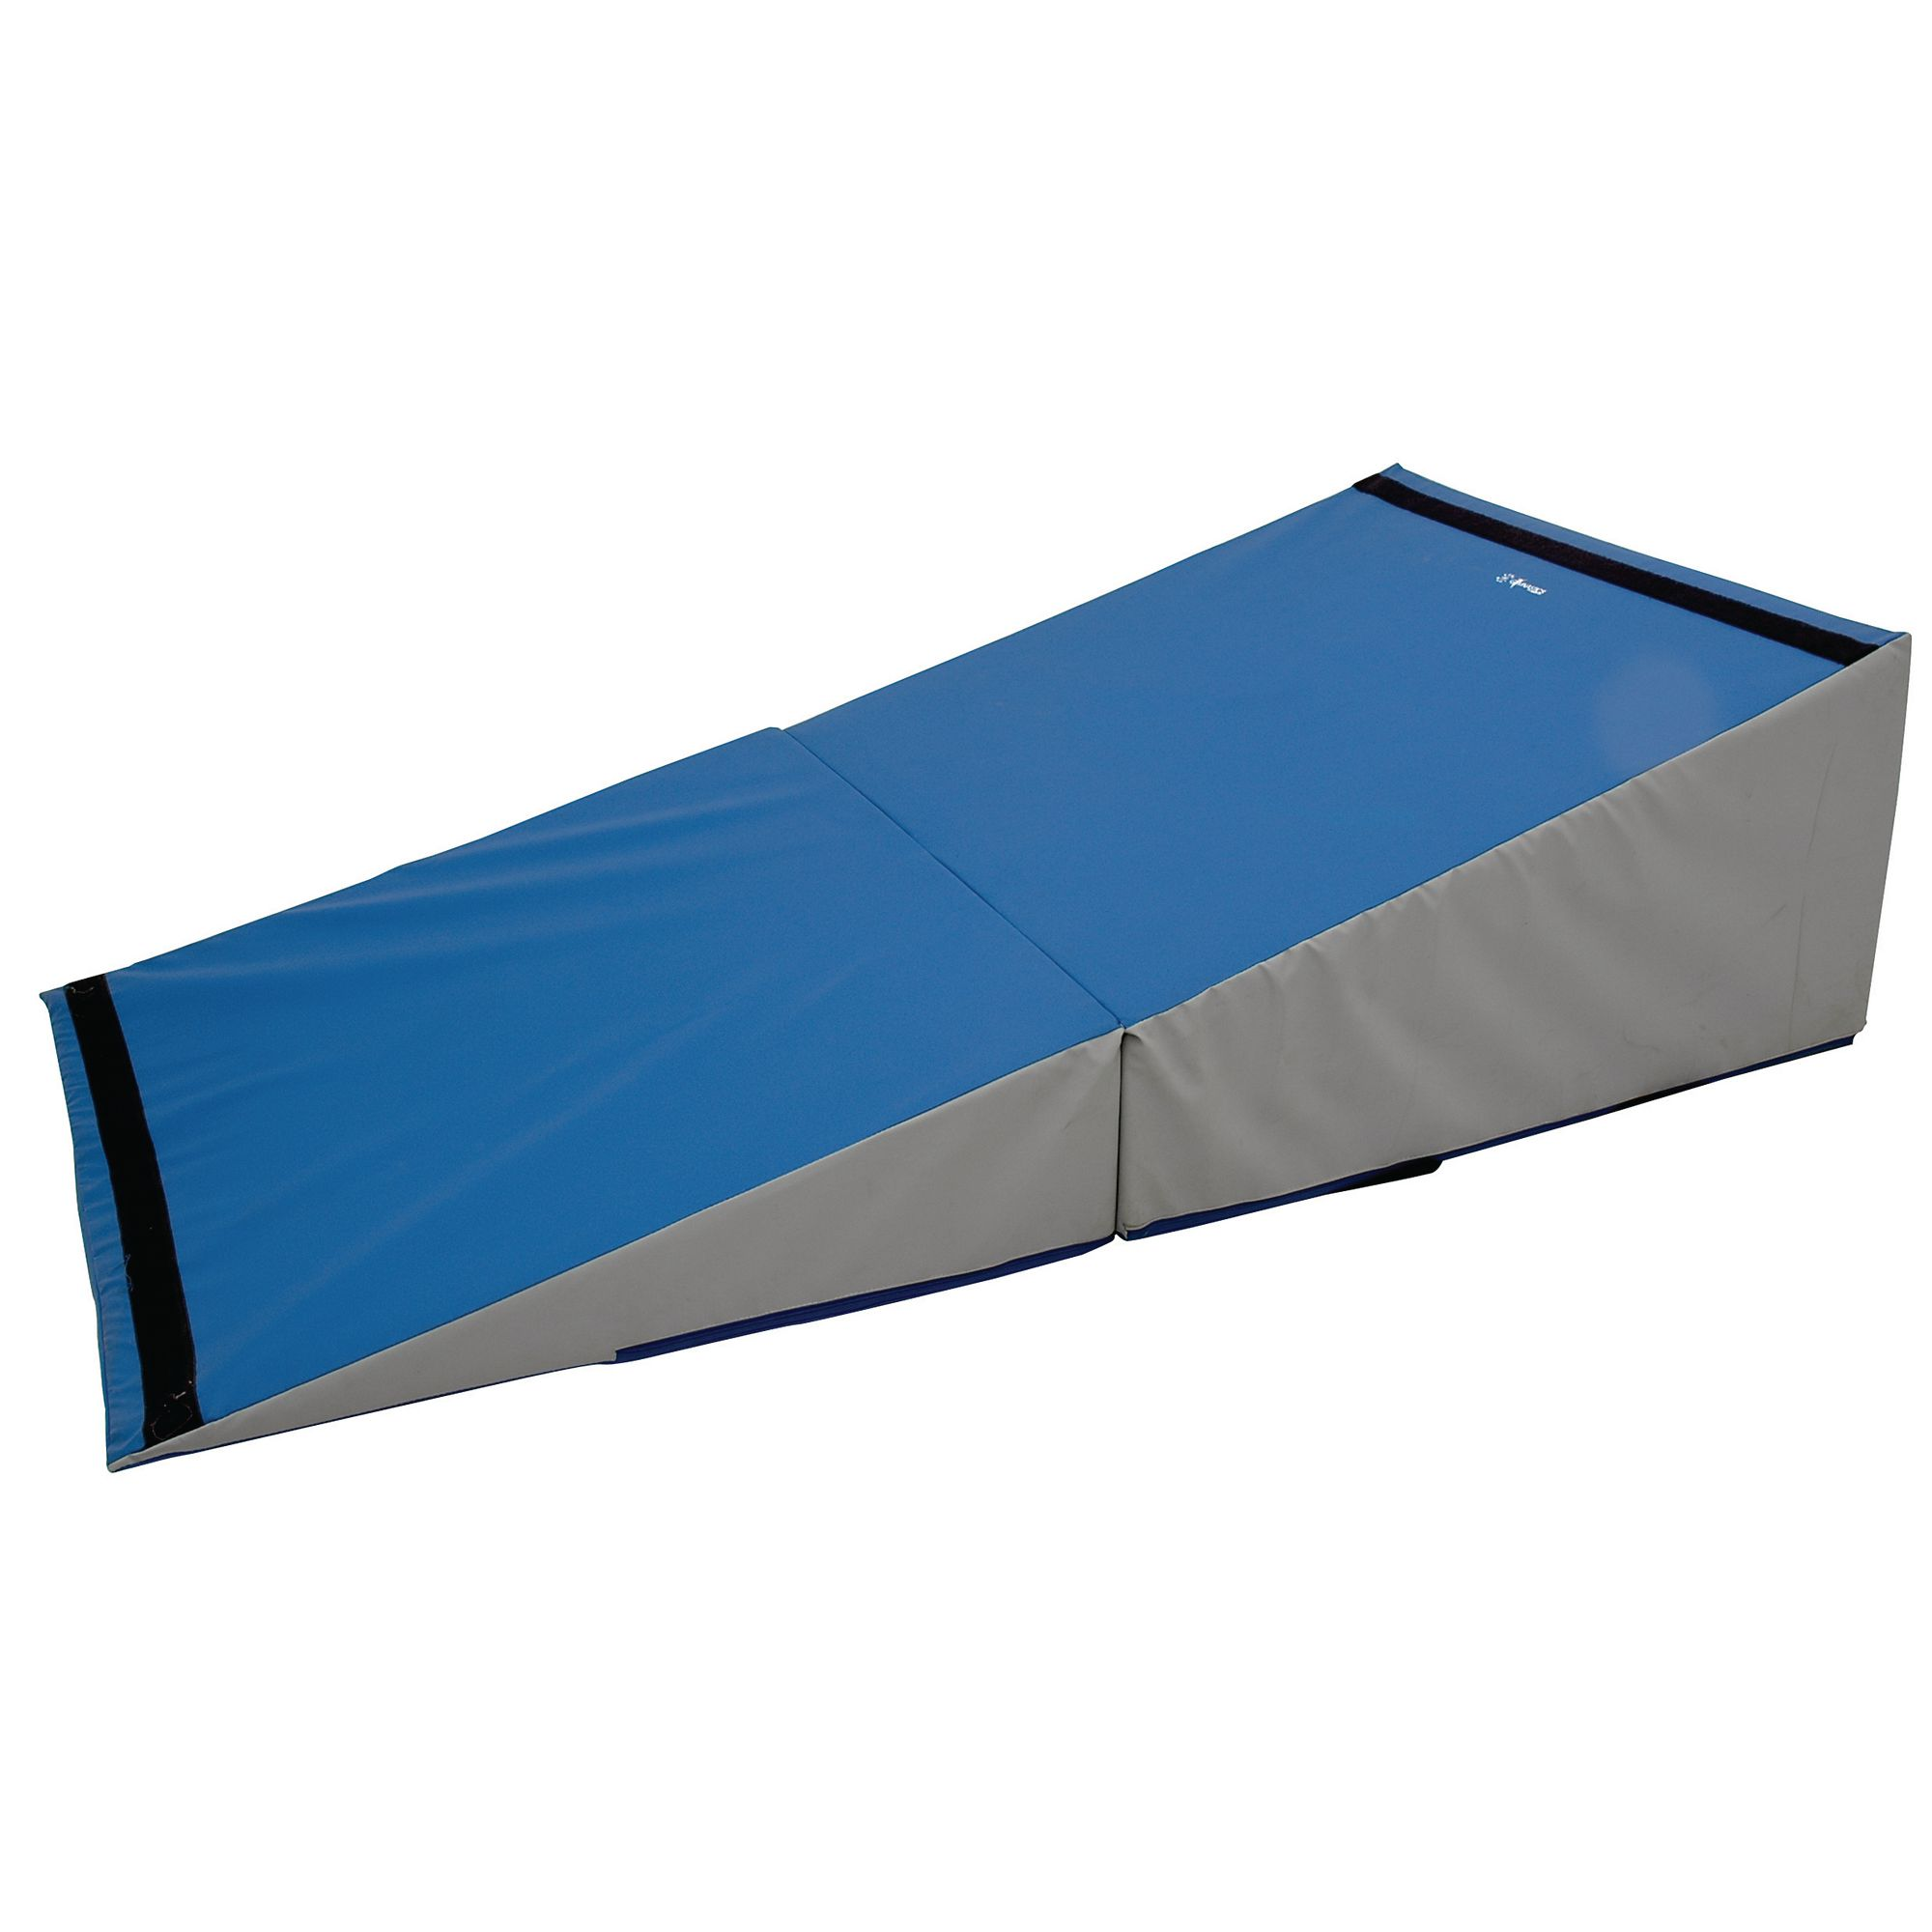 athletic mats folding arts wedge dp martial and home com amazon gym use tumbling z mat for gymnastics incline